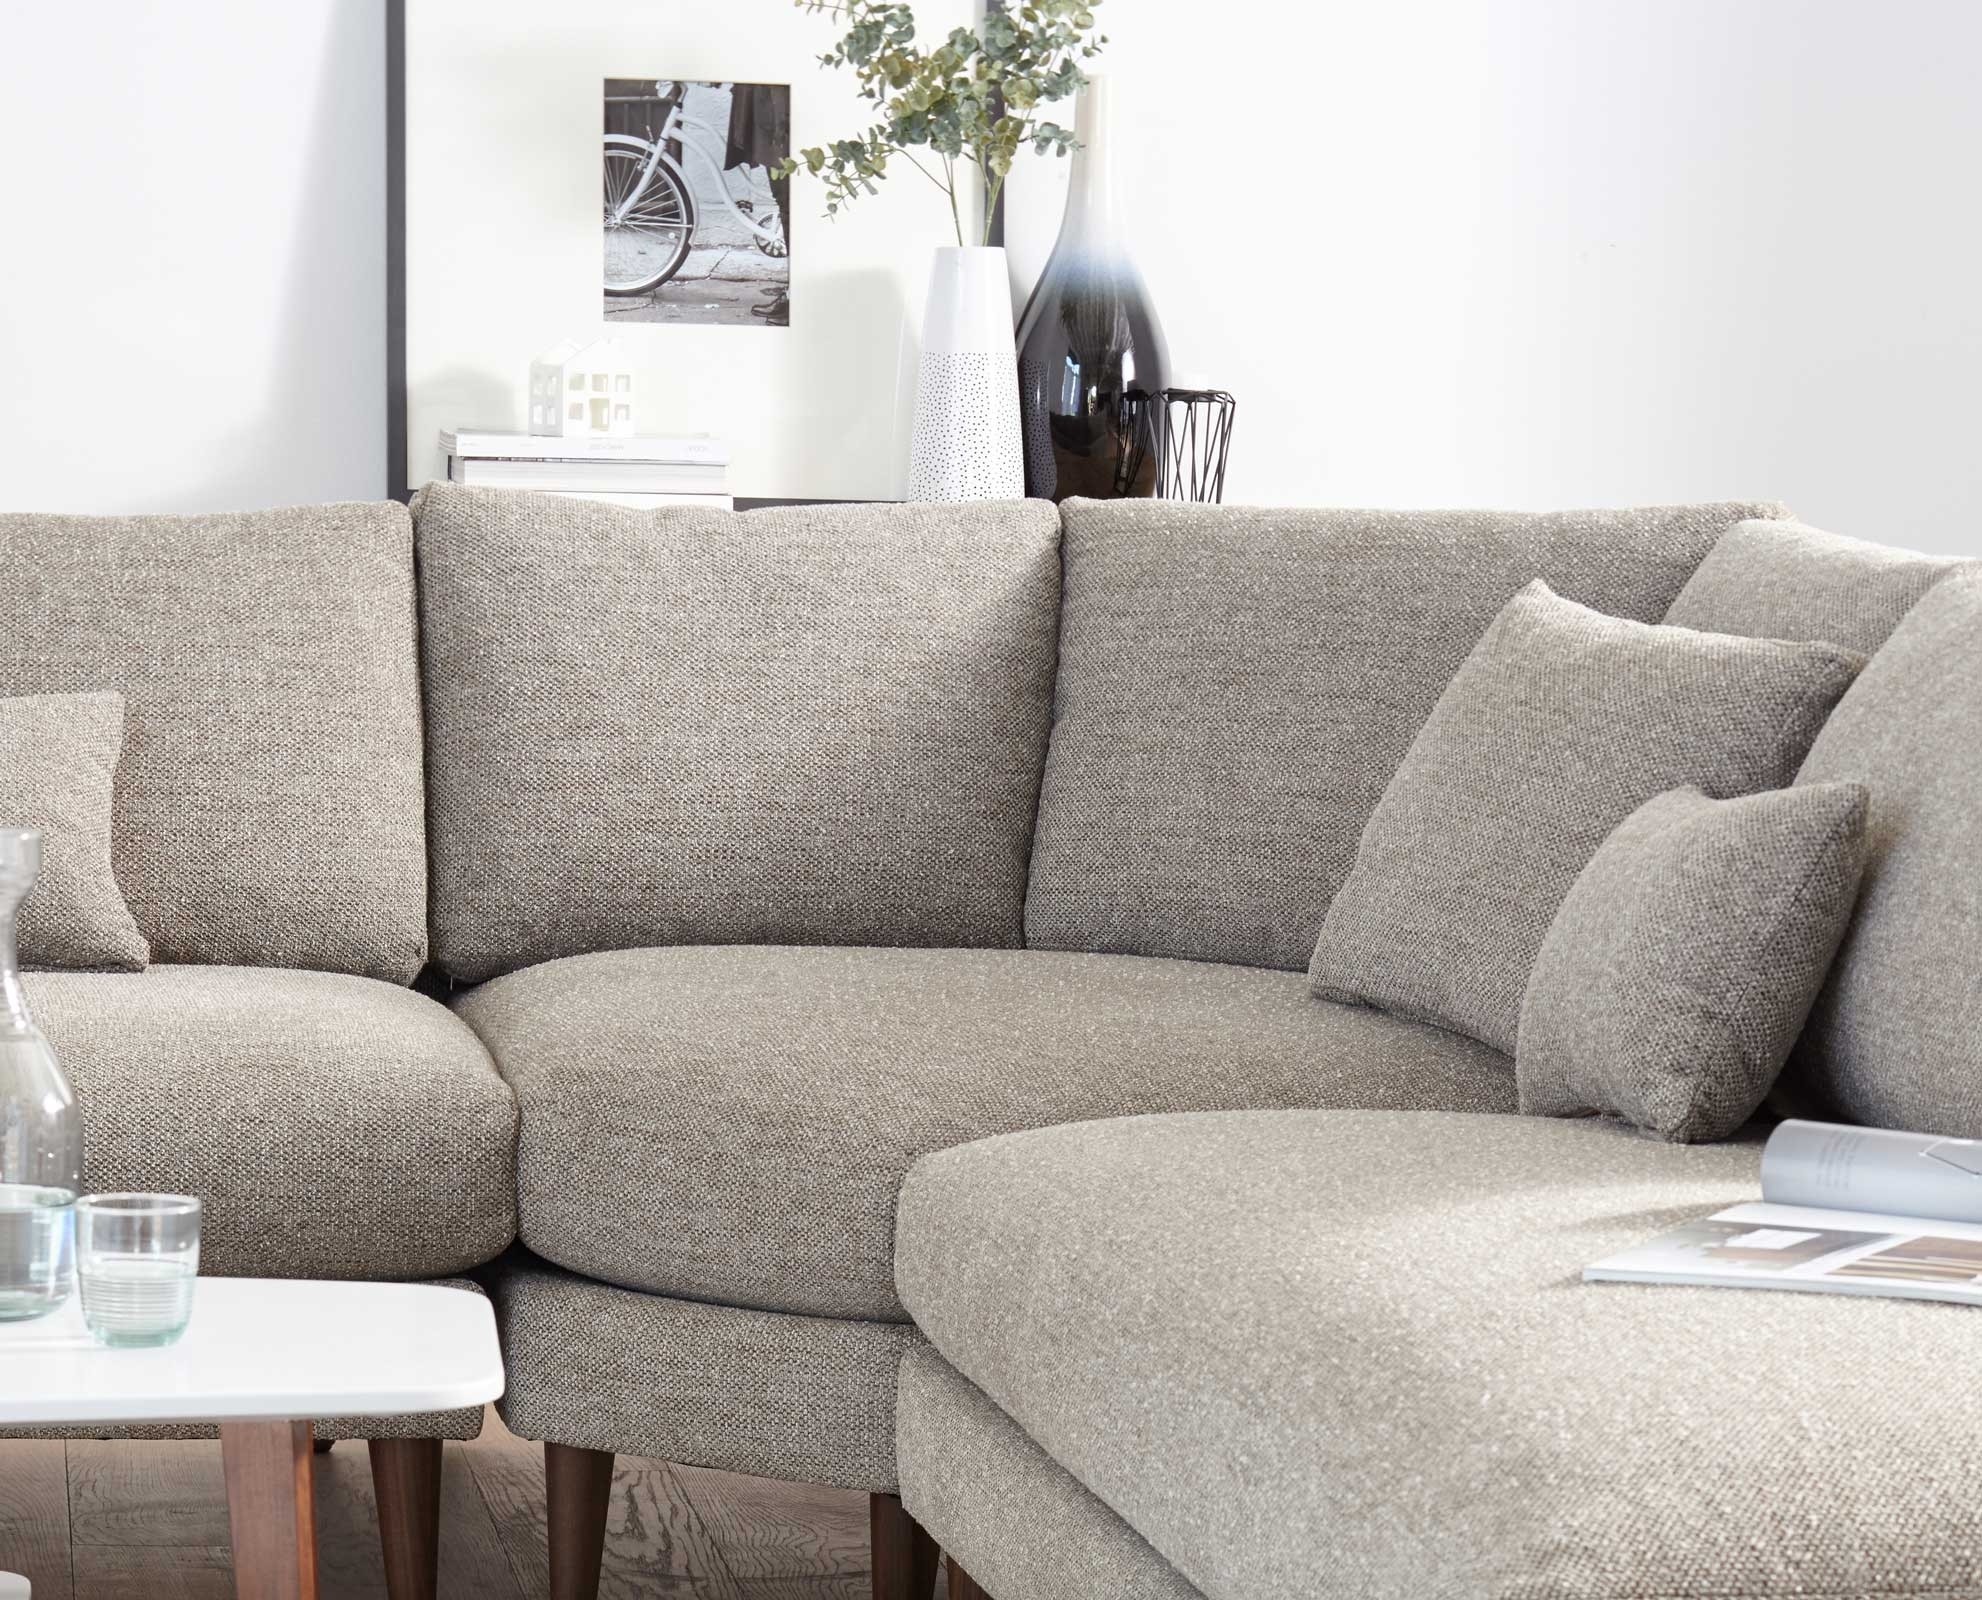 The Grand Hugo Sectional From Scandinavian Designs Is A Great Value Inside Grand Furniture Sectional Sofas (View 9 of 10)